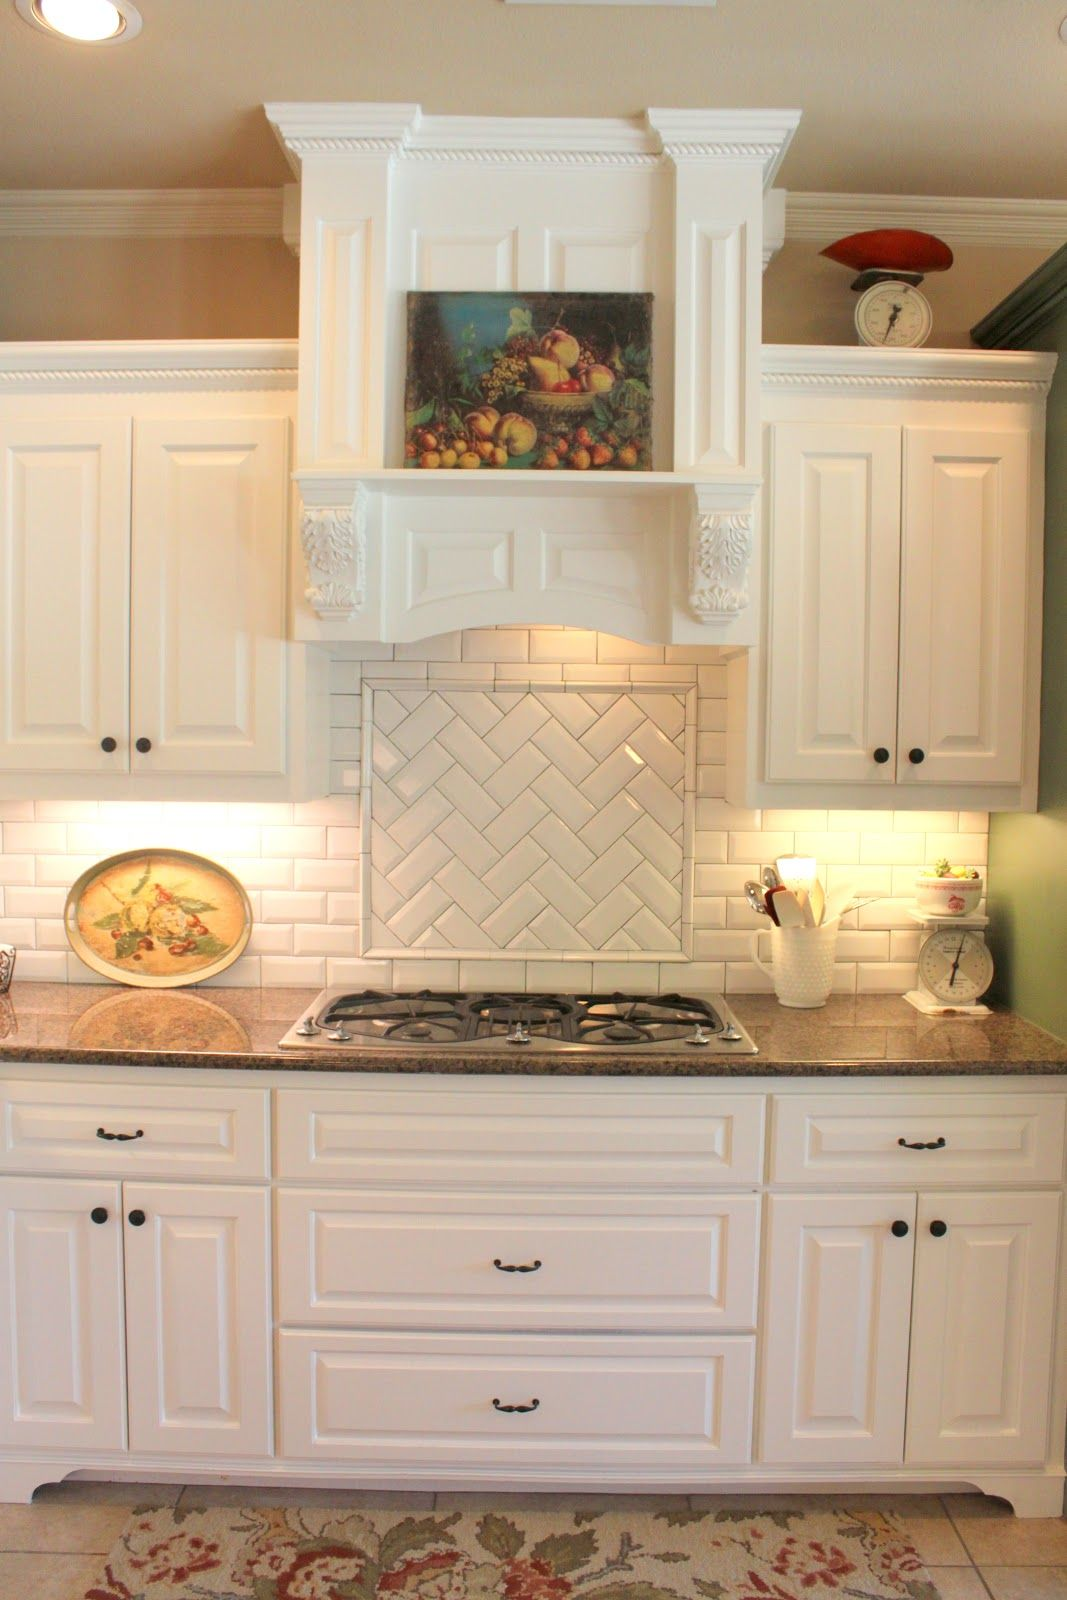 Framed Square Catchy Herringbone Backsplash Accent Tiling Using Matte White Color For Kitchen Backsplash Designs Trendy Kitchen Backsplash Kitchen Inspirations